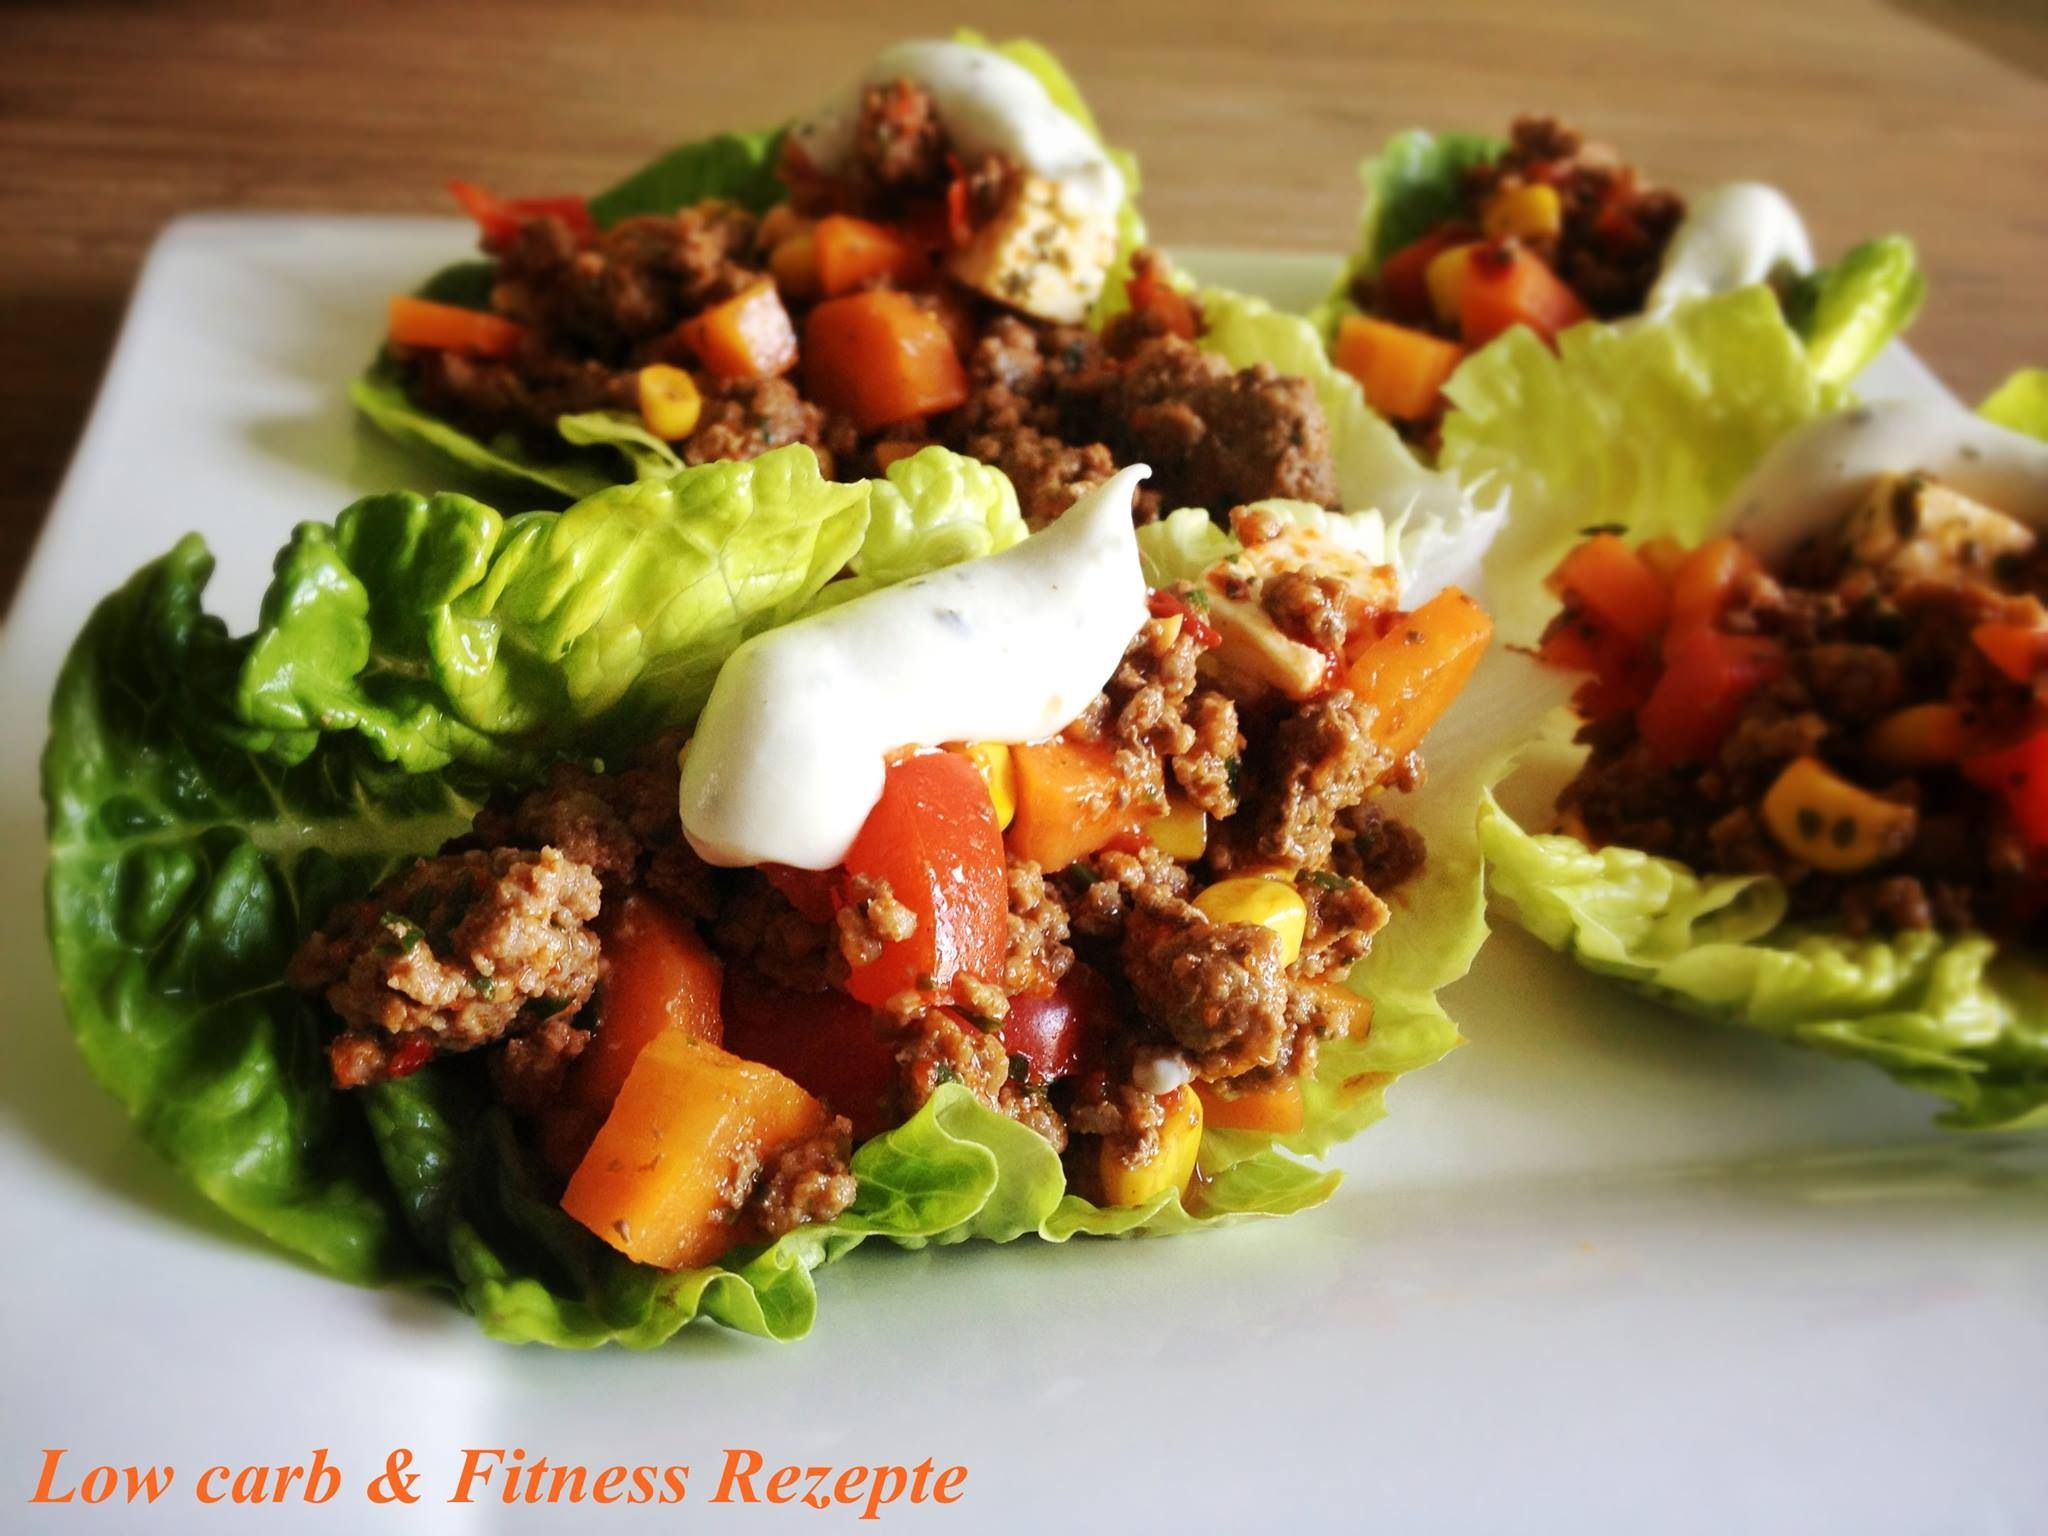 Fitness rezepte low carb high protein